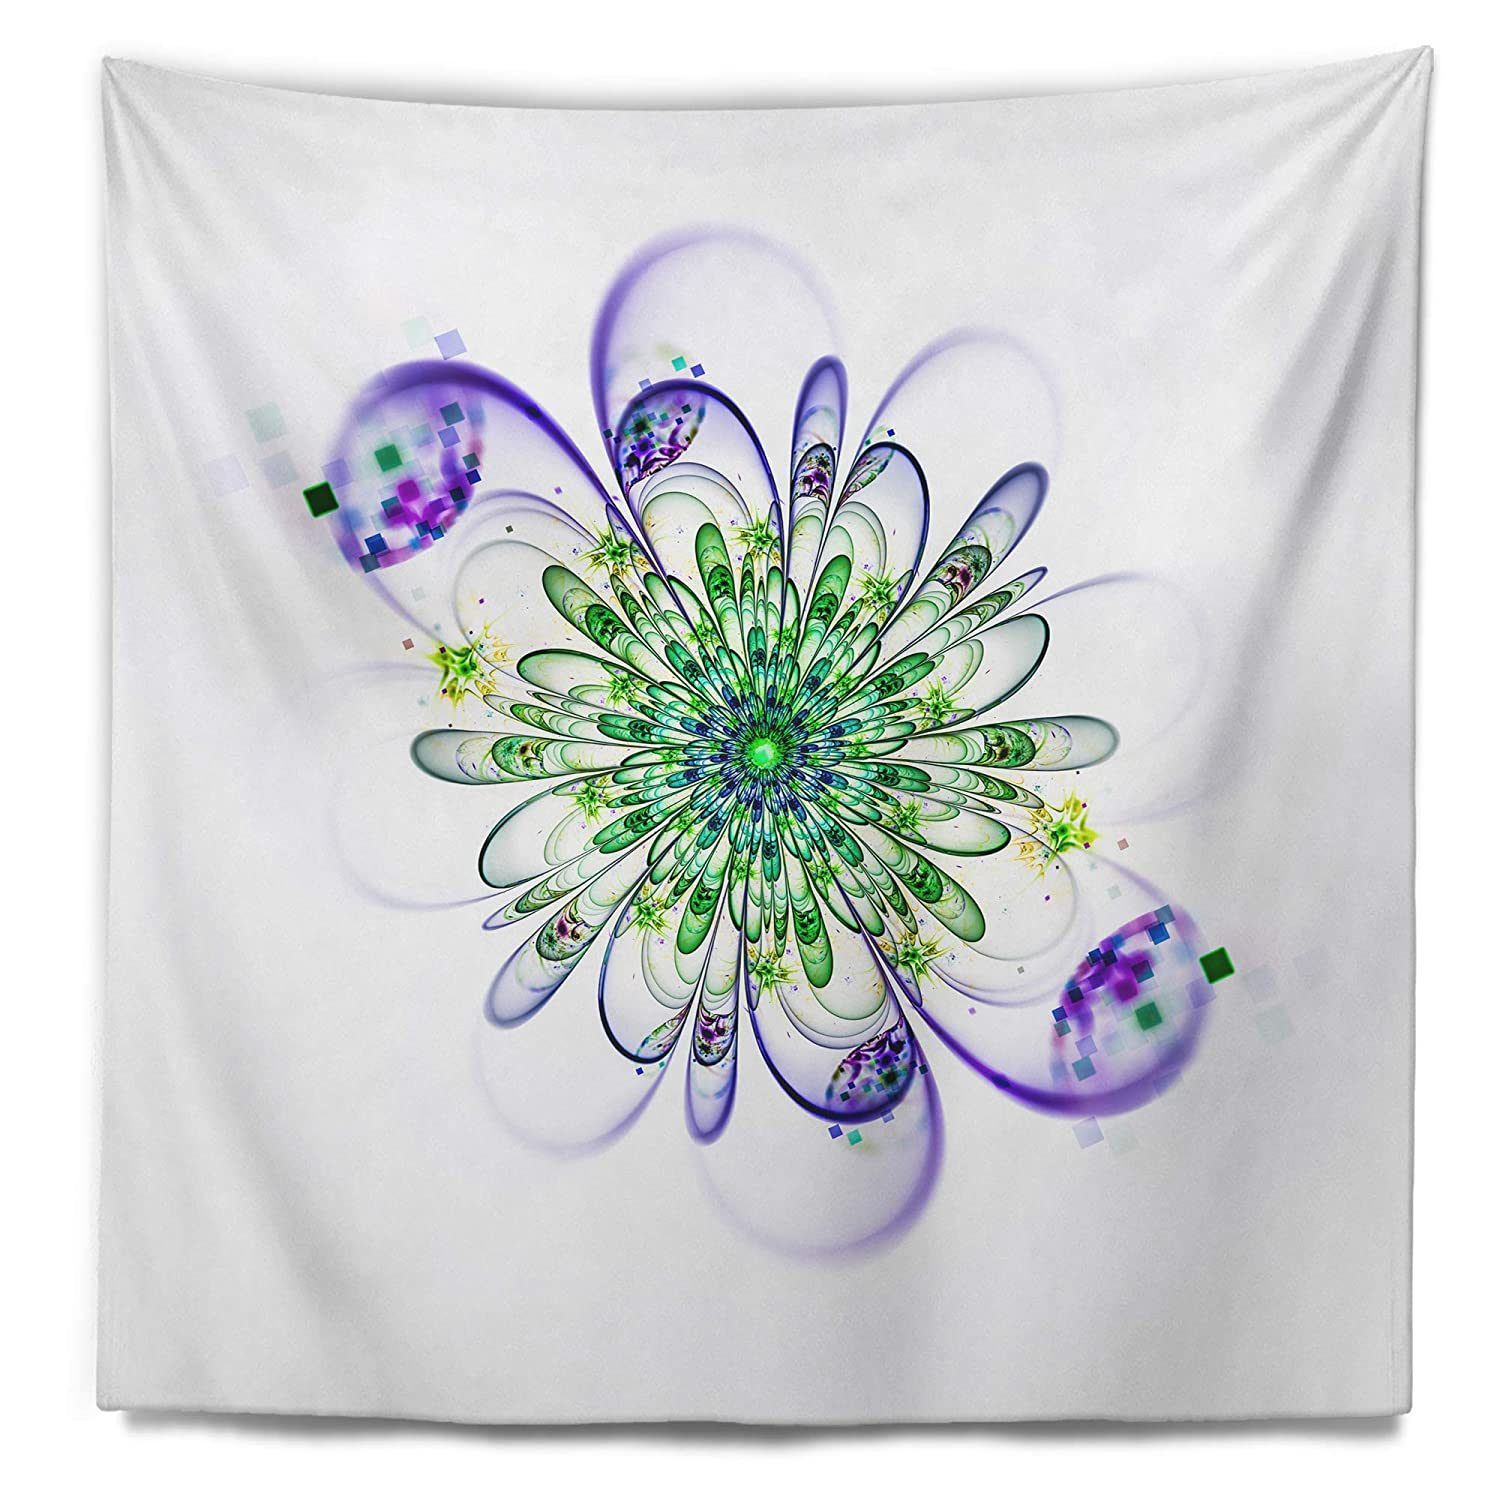 Designart TAP12170-68-80  Fascinating Green Purple Fractal Flower Floral Blanket D/écor Art for Home and Office Wall Tapestry XX-Large 68 x 80